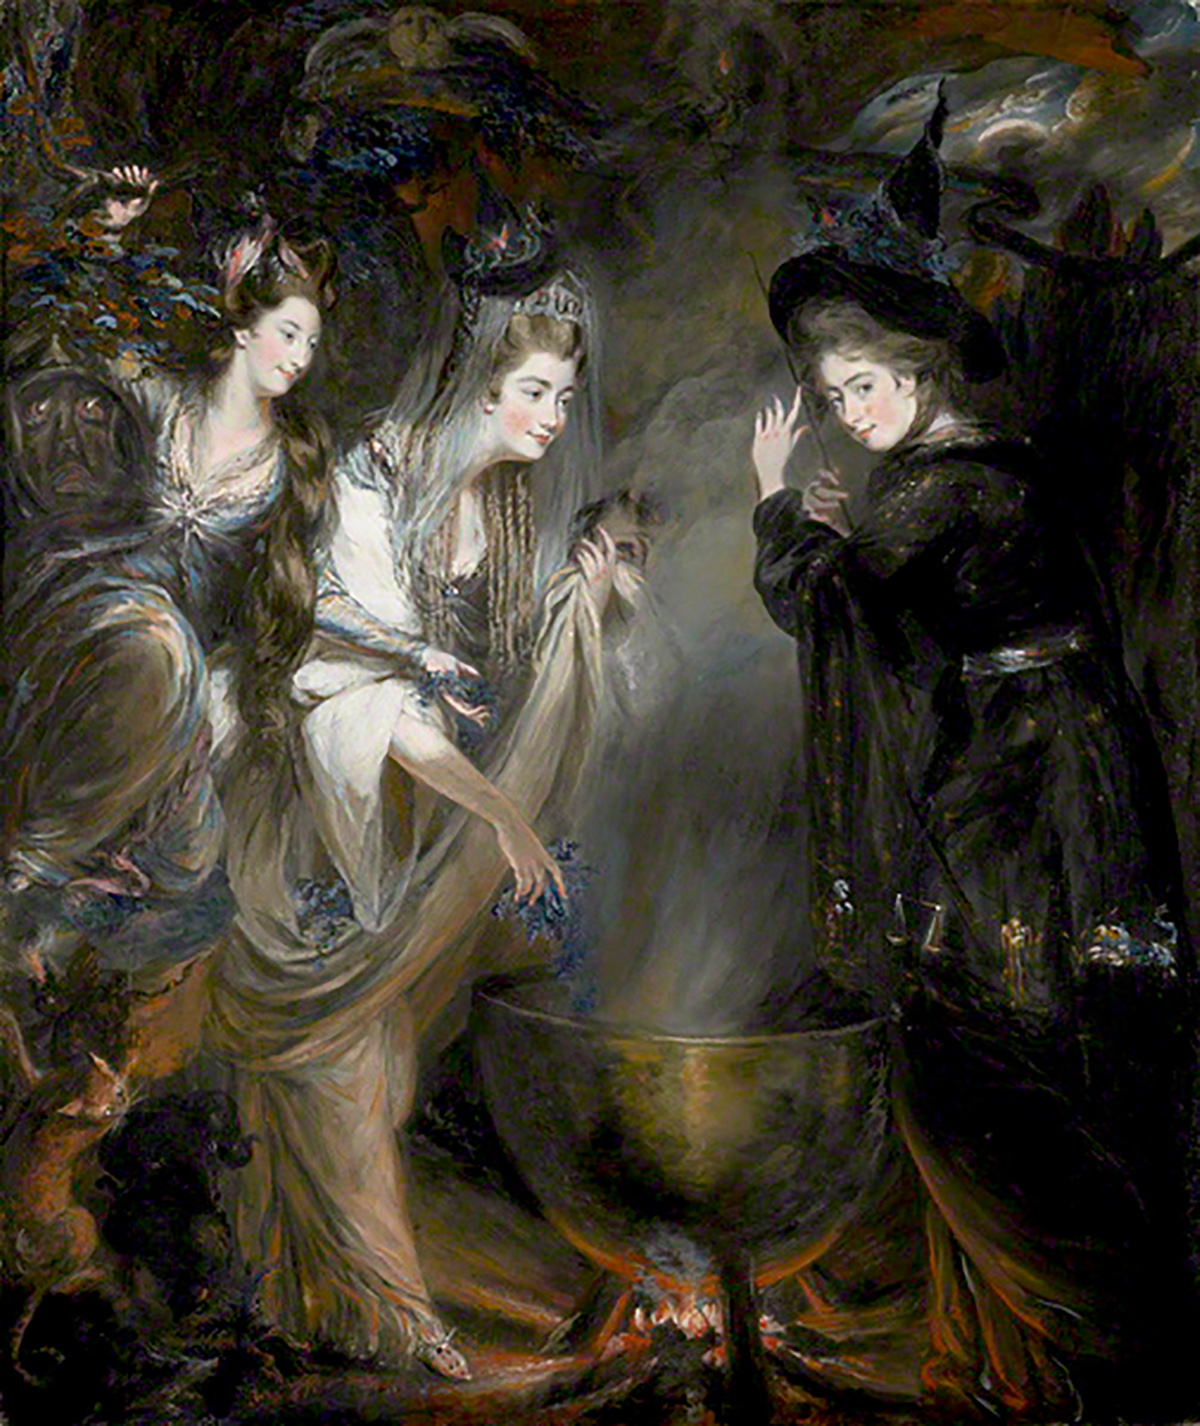 Daniel Gardner, The Three Witches from Macbeth, 1775